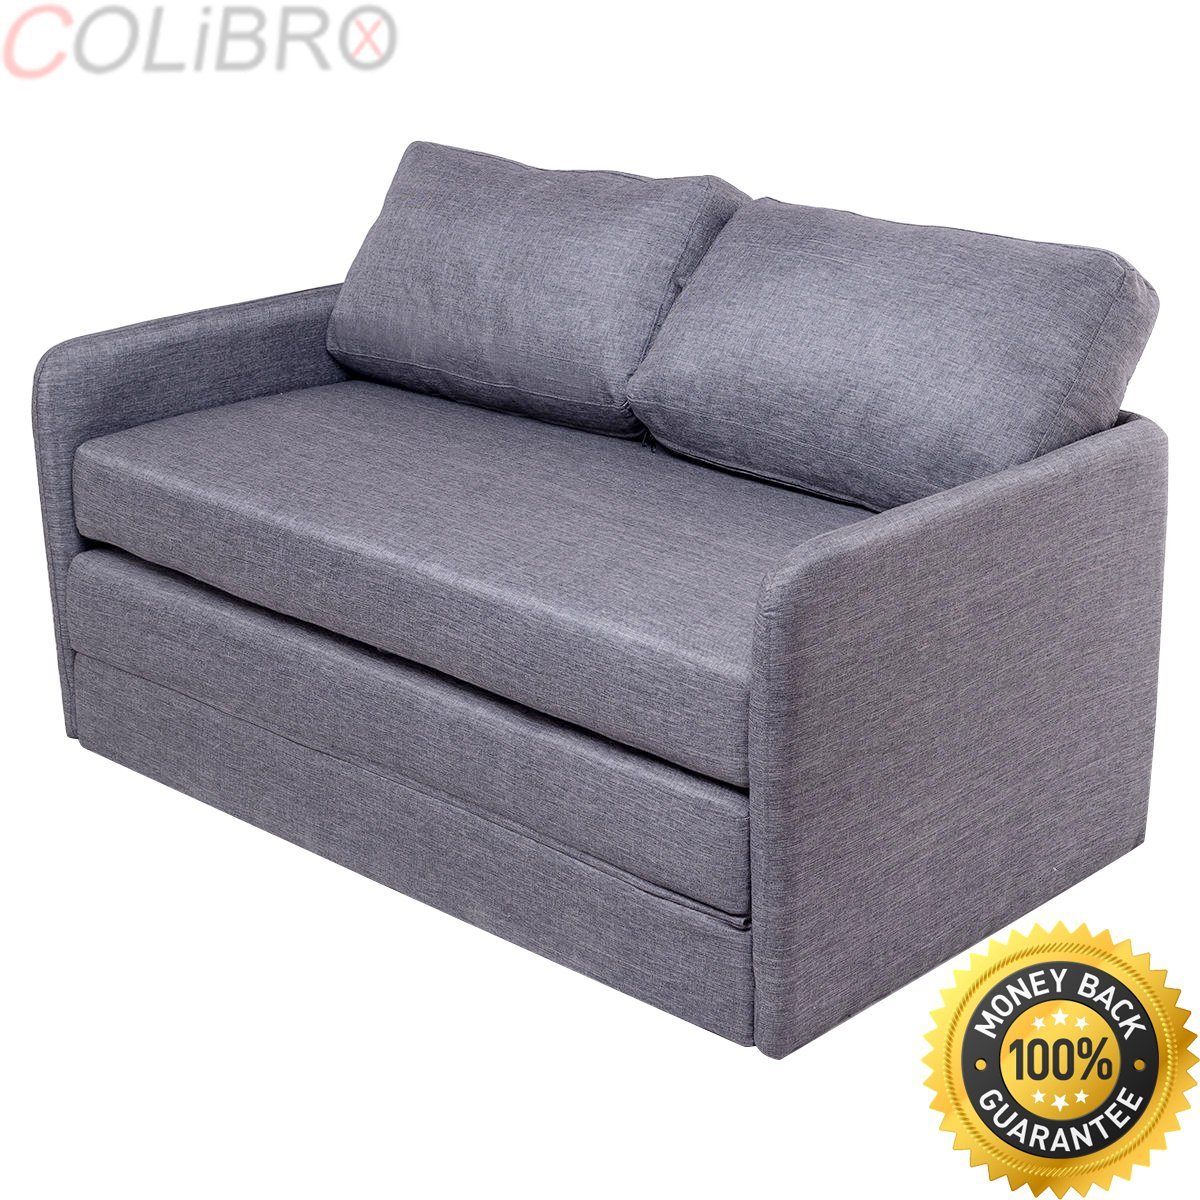 Get Quotations Colibrox Foldable Sleeper Sofa Bed Couch Loveseat Guest Lounge Living Room Furniture Gray